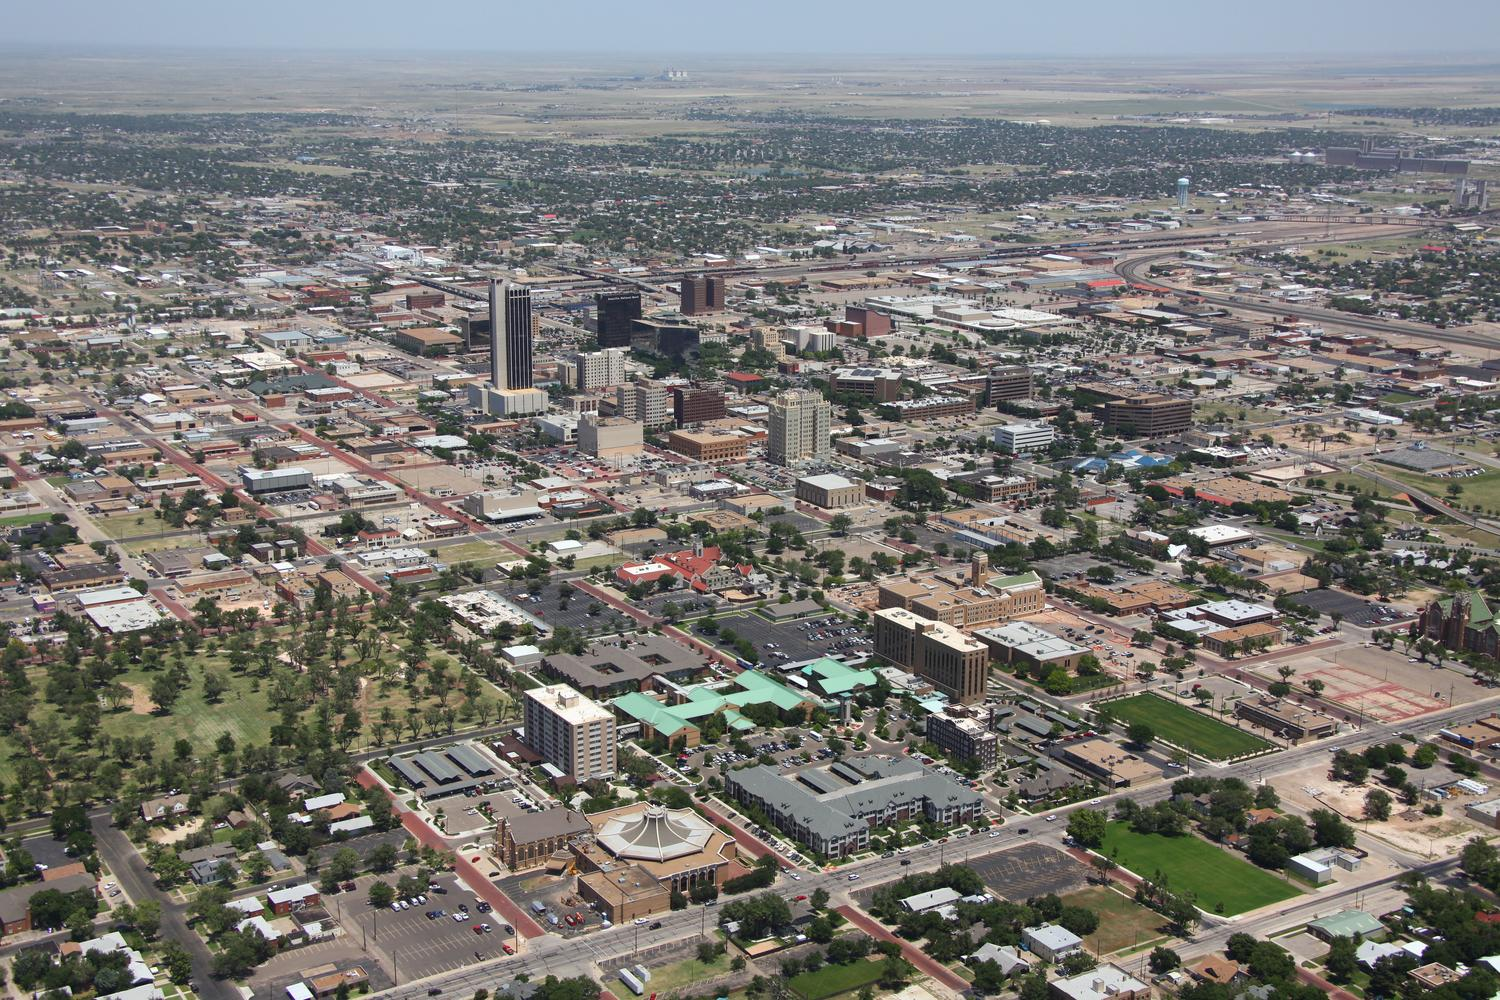 Amarillo CBD, Amarillo, Texas - Amarillo Aerial Photographer - Aerial Drone Image - Aerial Drone Video - Amarillo, TX - West Texas